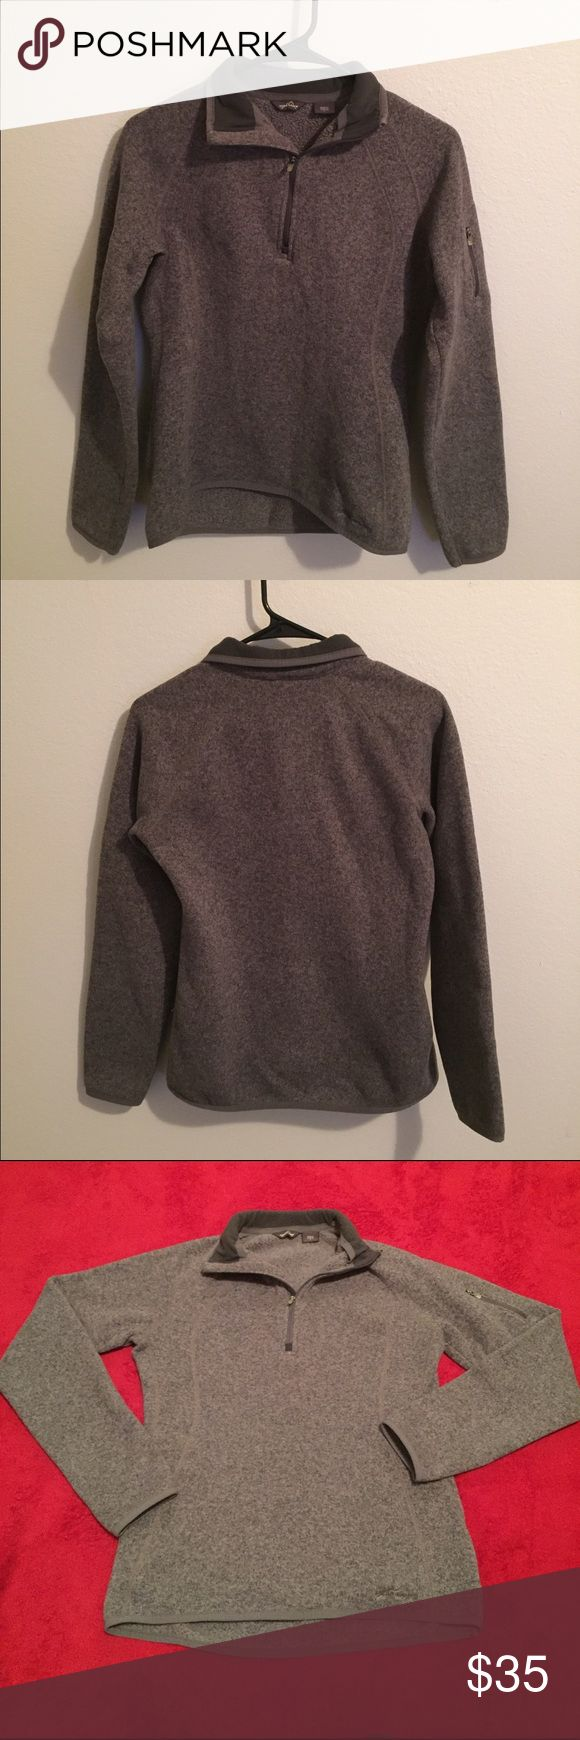 Eddie Bauer 1/4 Zip Up Gray Radiator Fleece Small Very nice and comfy gray Eddie Bauer fleece pullover. Size is small and fits like that. It has a zipper on the left sleeve. It is a shaped fit and 100 percent polyester! Worn but still in very good condition! Eddie Bauer Sweaters